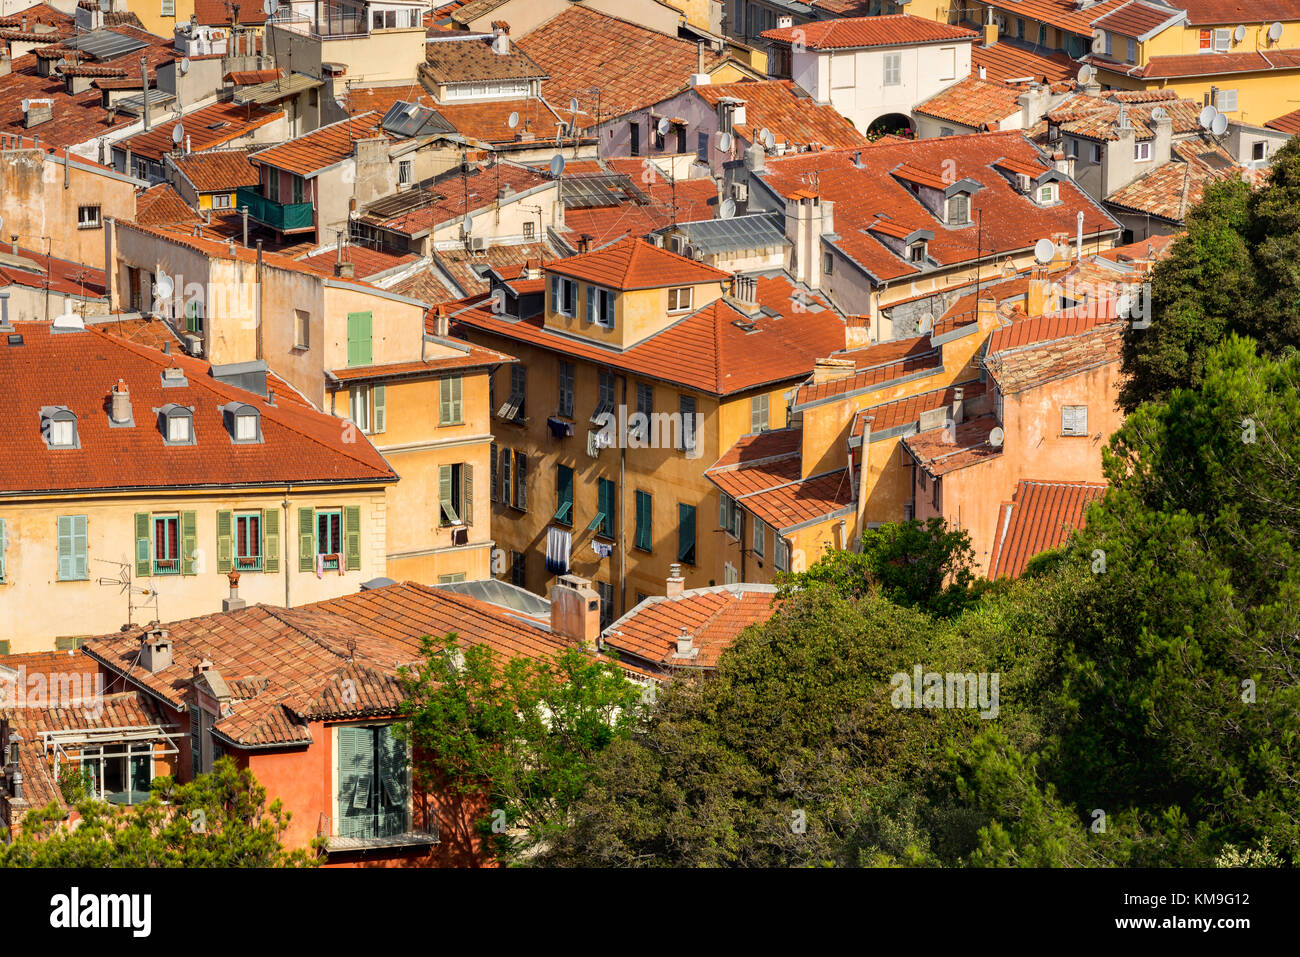 Roofs of Nice in summer with their distinctive terracotta tiles and louvered shutters. French Riviera, Alpes Maritimes, - Stock Image